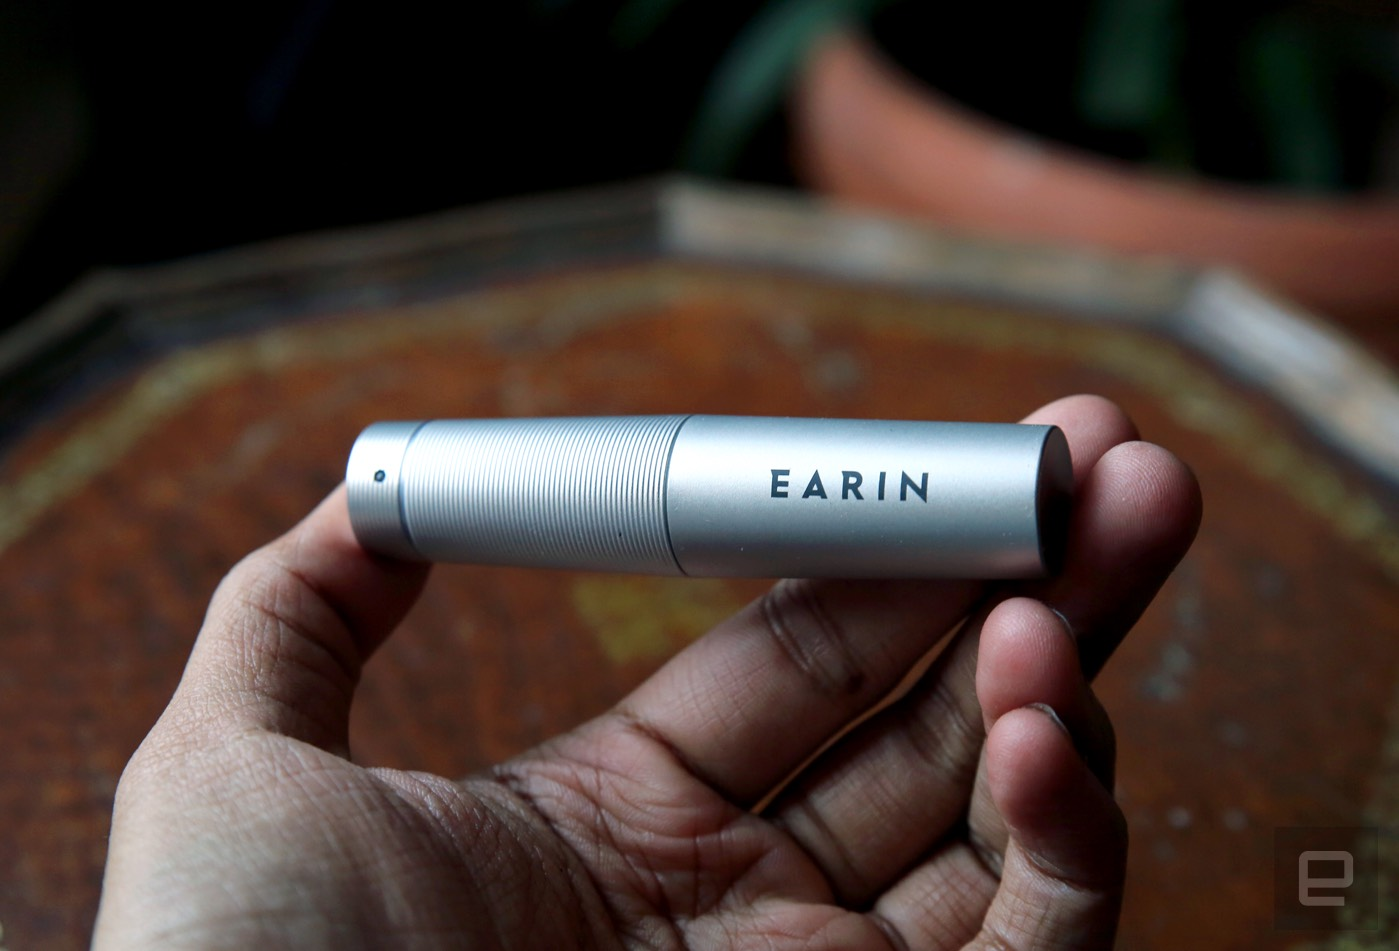 Earin's wireless earbuds are ambitious but flawed